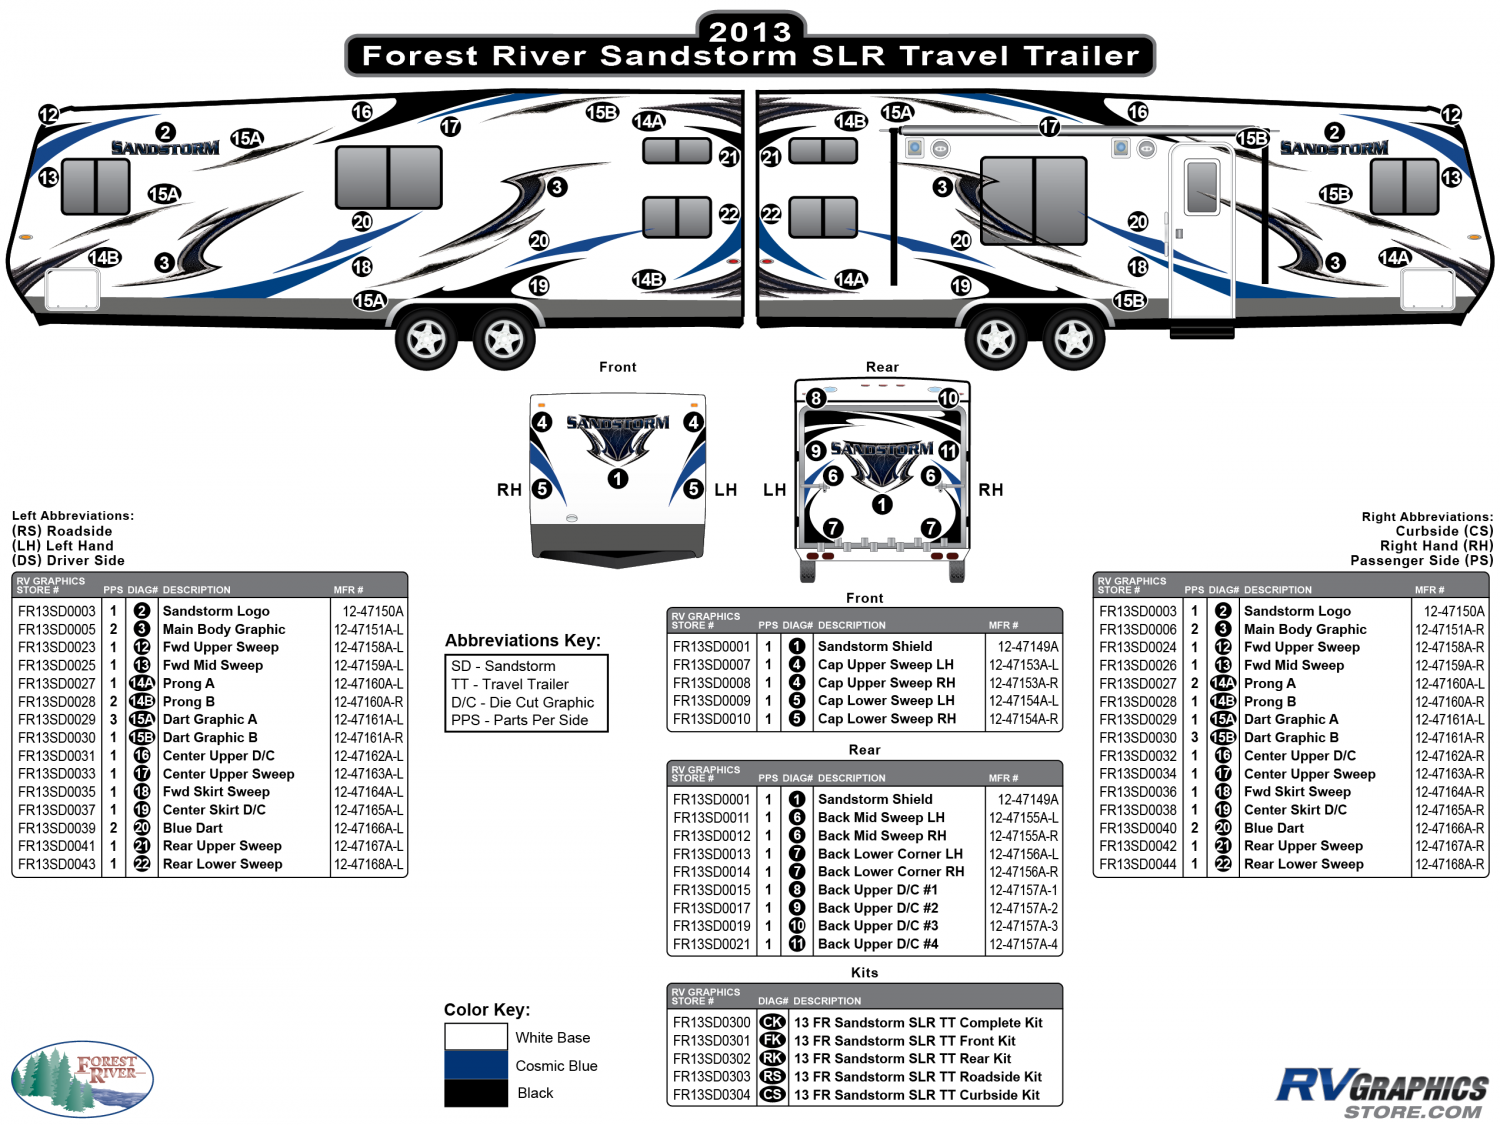 Sandstorm - 2013-2014 Sandstorm Lg TT-Large Travel Trailer